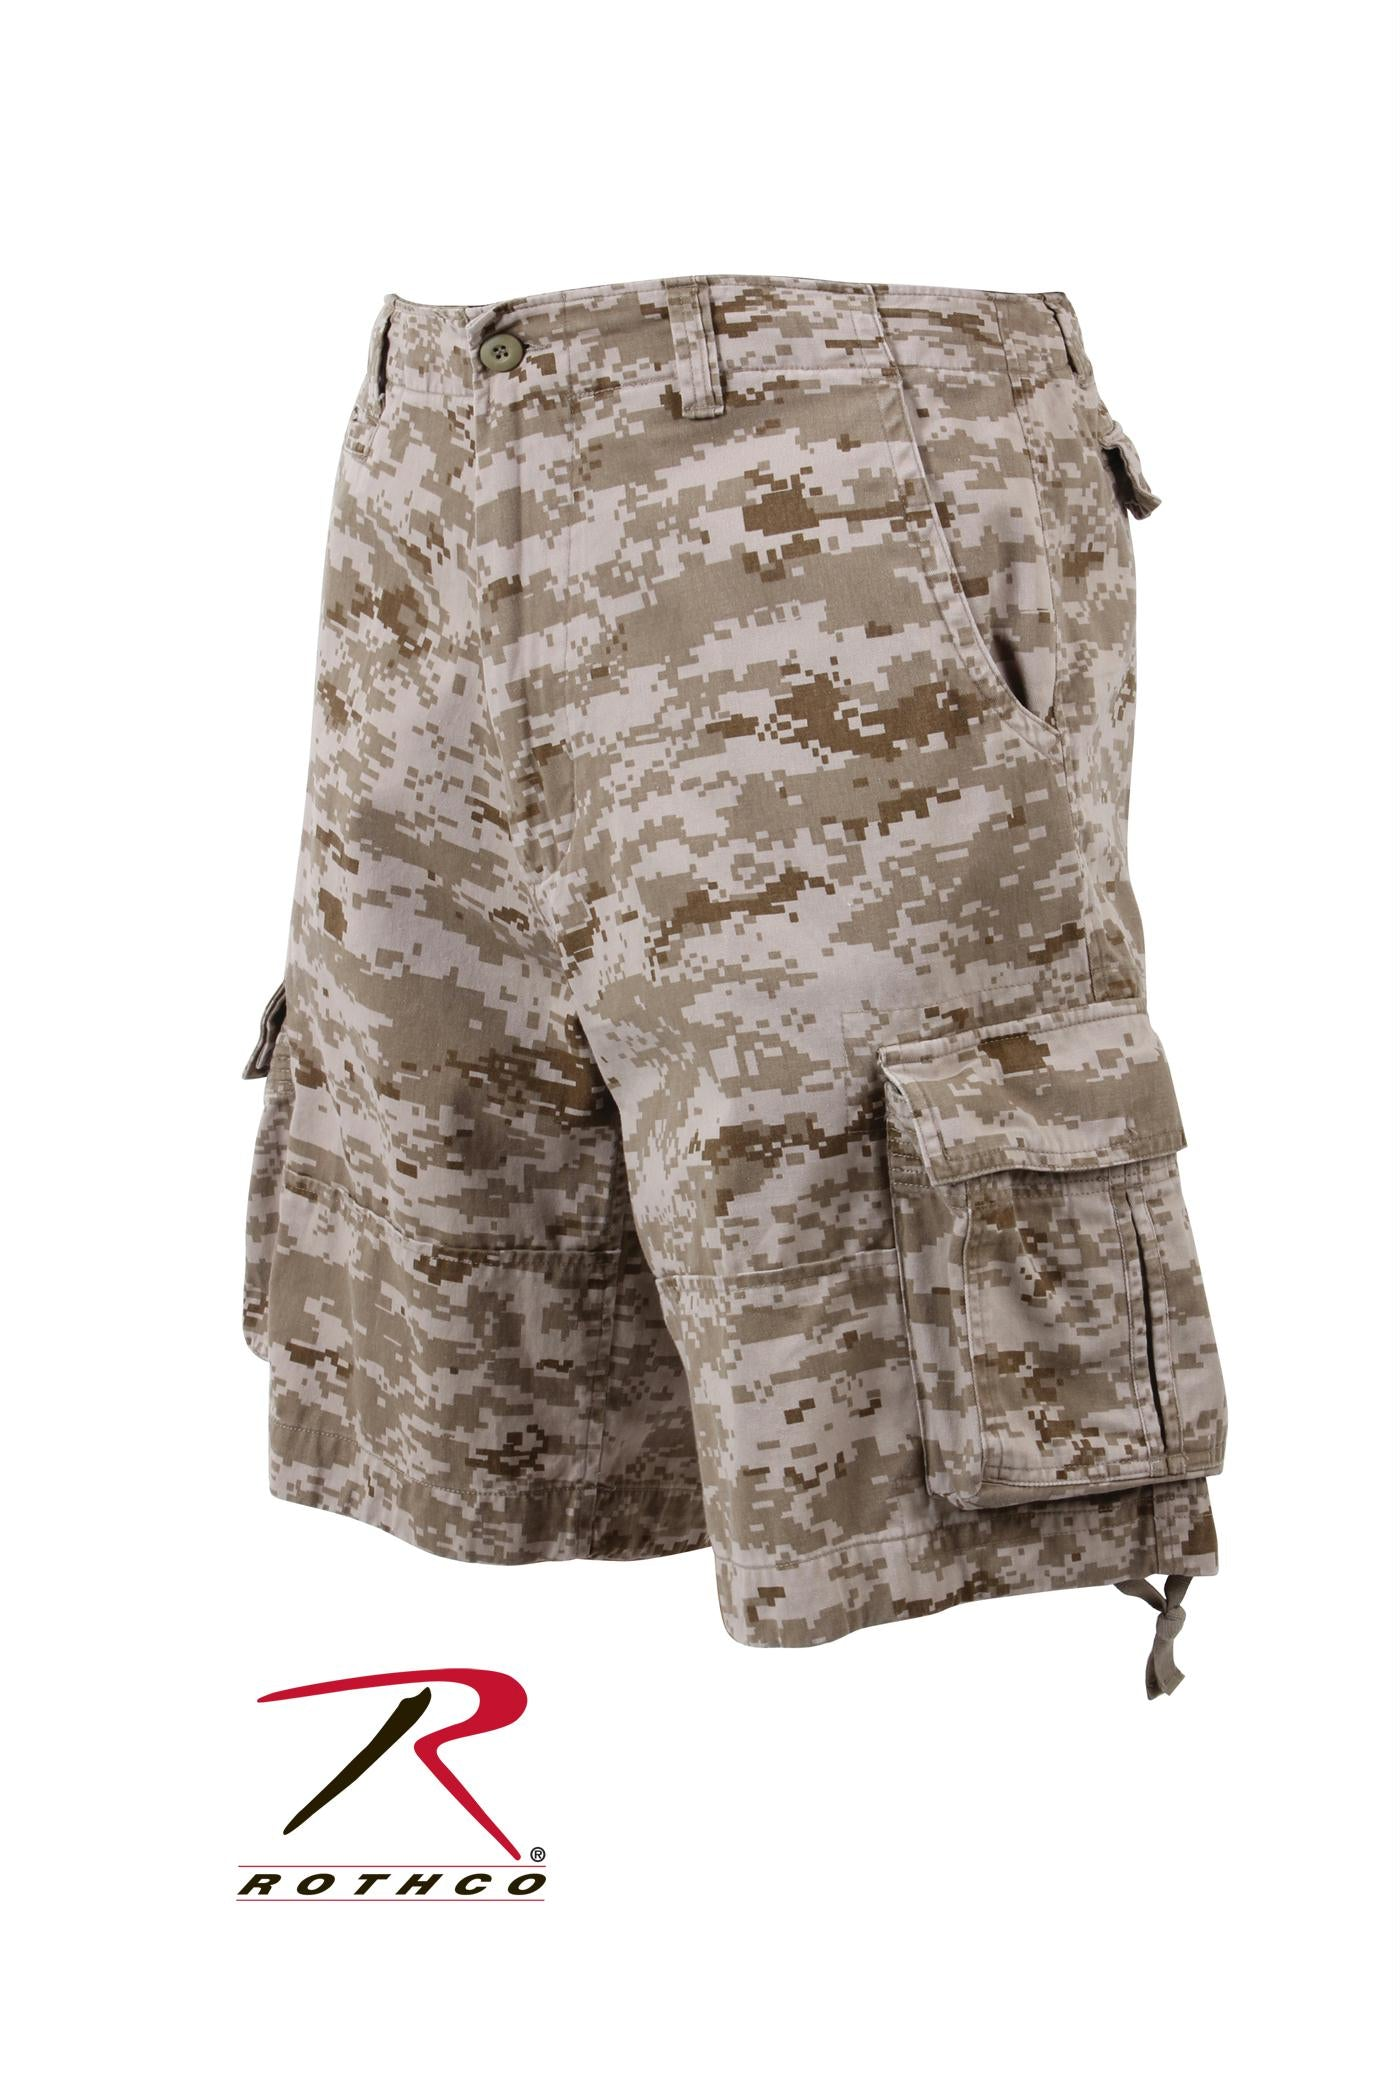 Rothco Vintage Camo Infantry Utility Shorts - Desert Digital Camo / XS